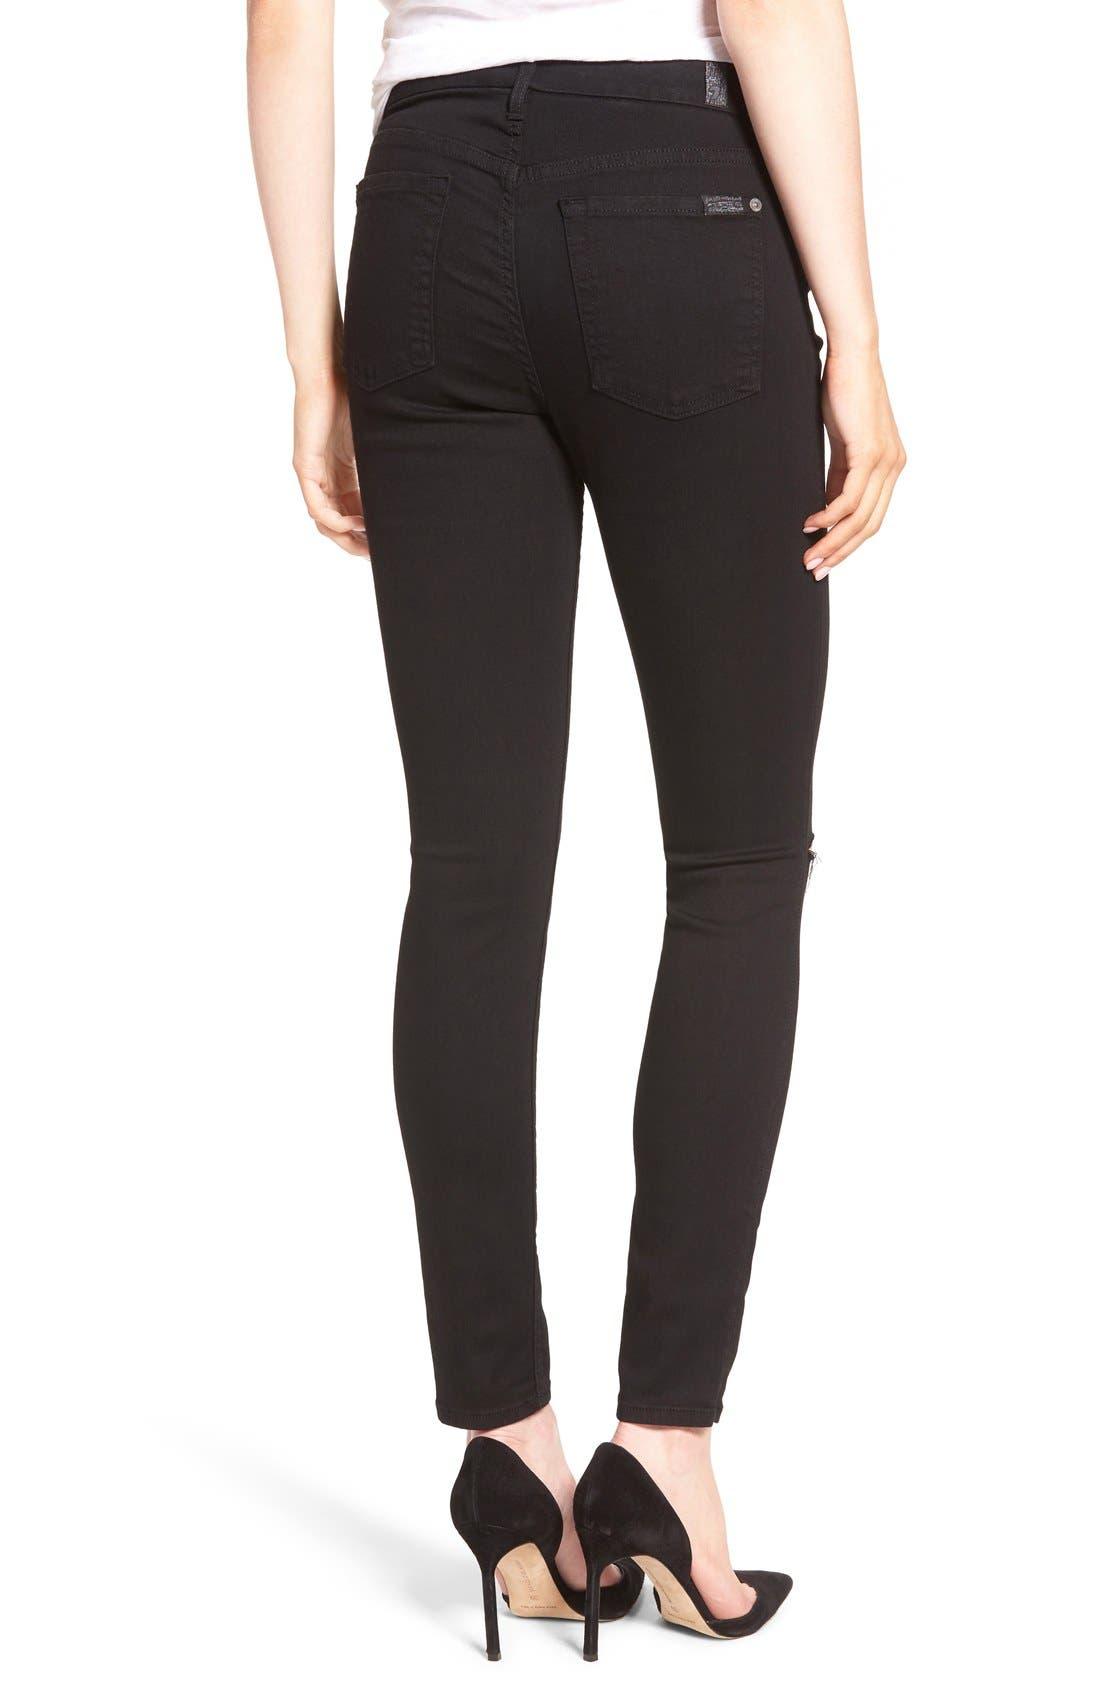 b(air) Ankle Skinny Jeans,                             Alternate thumbnail 7, color,                             004